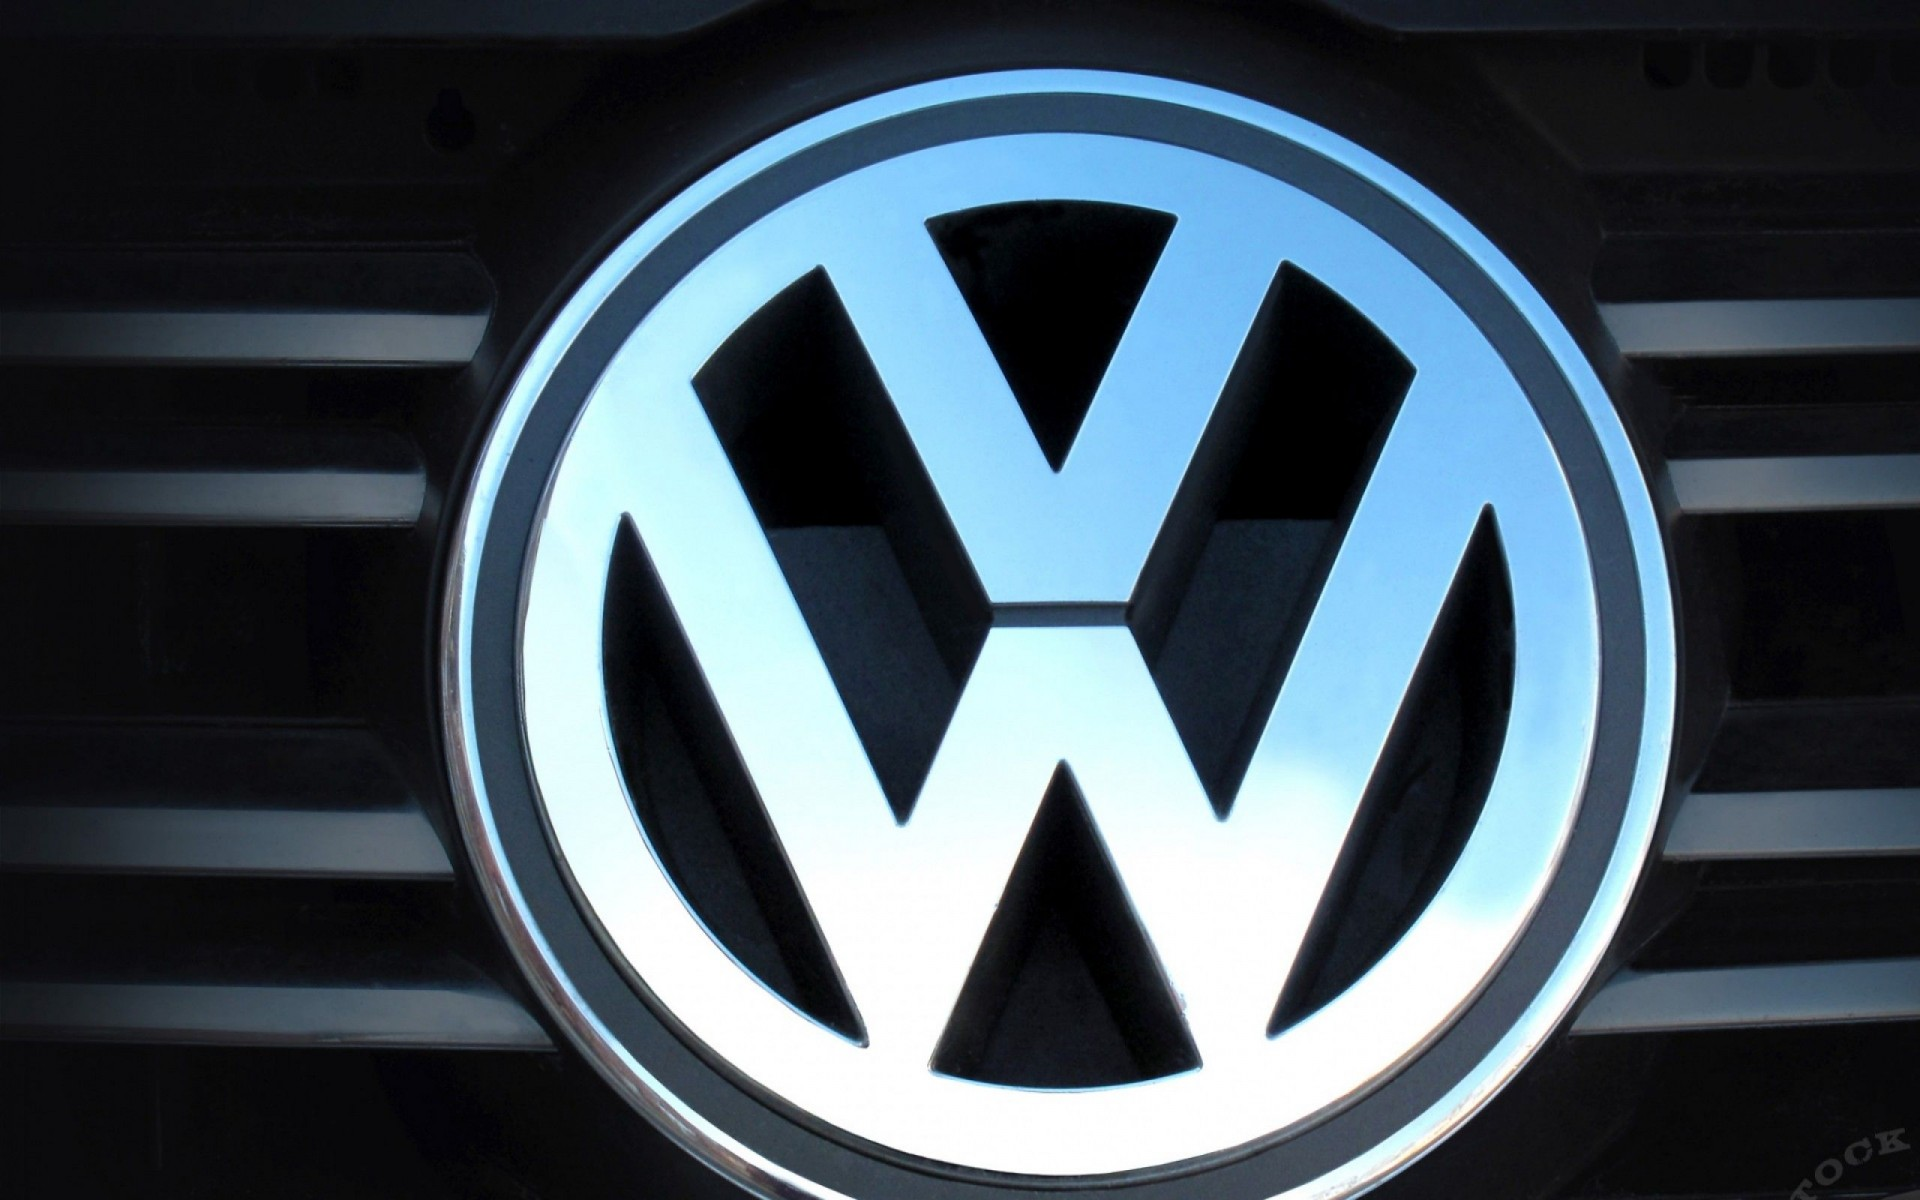 Volkswagen logo photo - 10